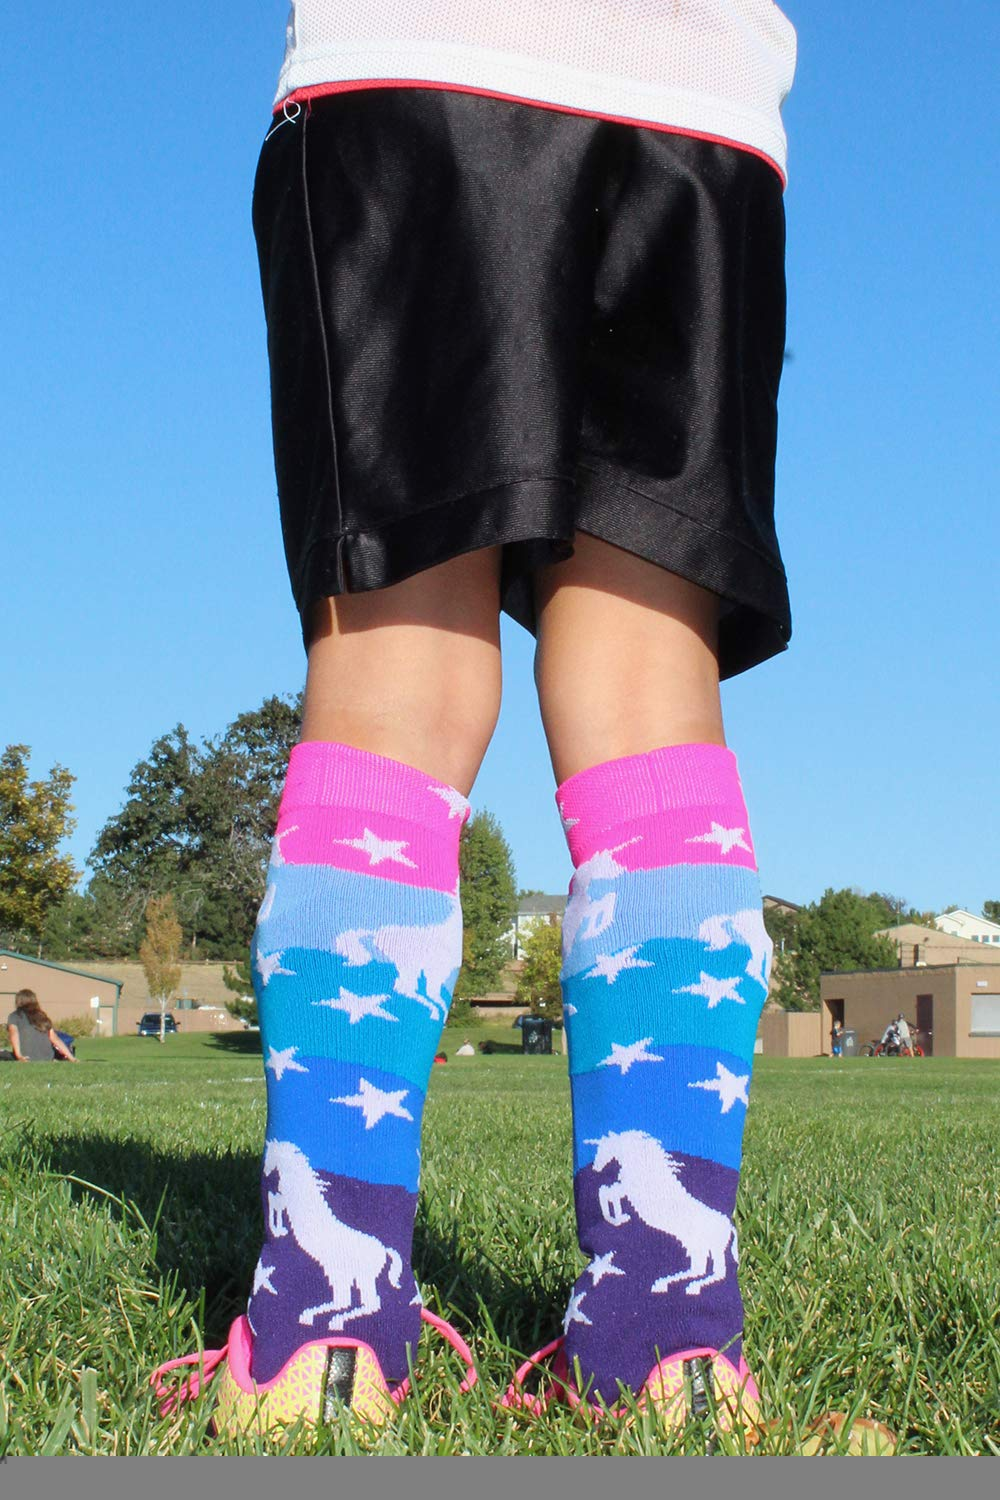 MadSportsStuff Neon Unicorn Socks Over The Calf 7